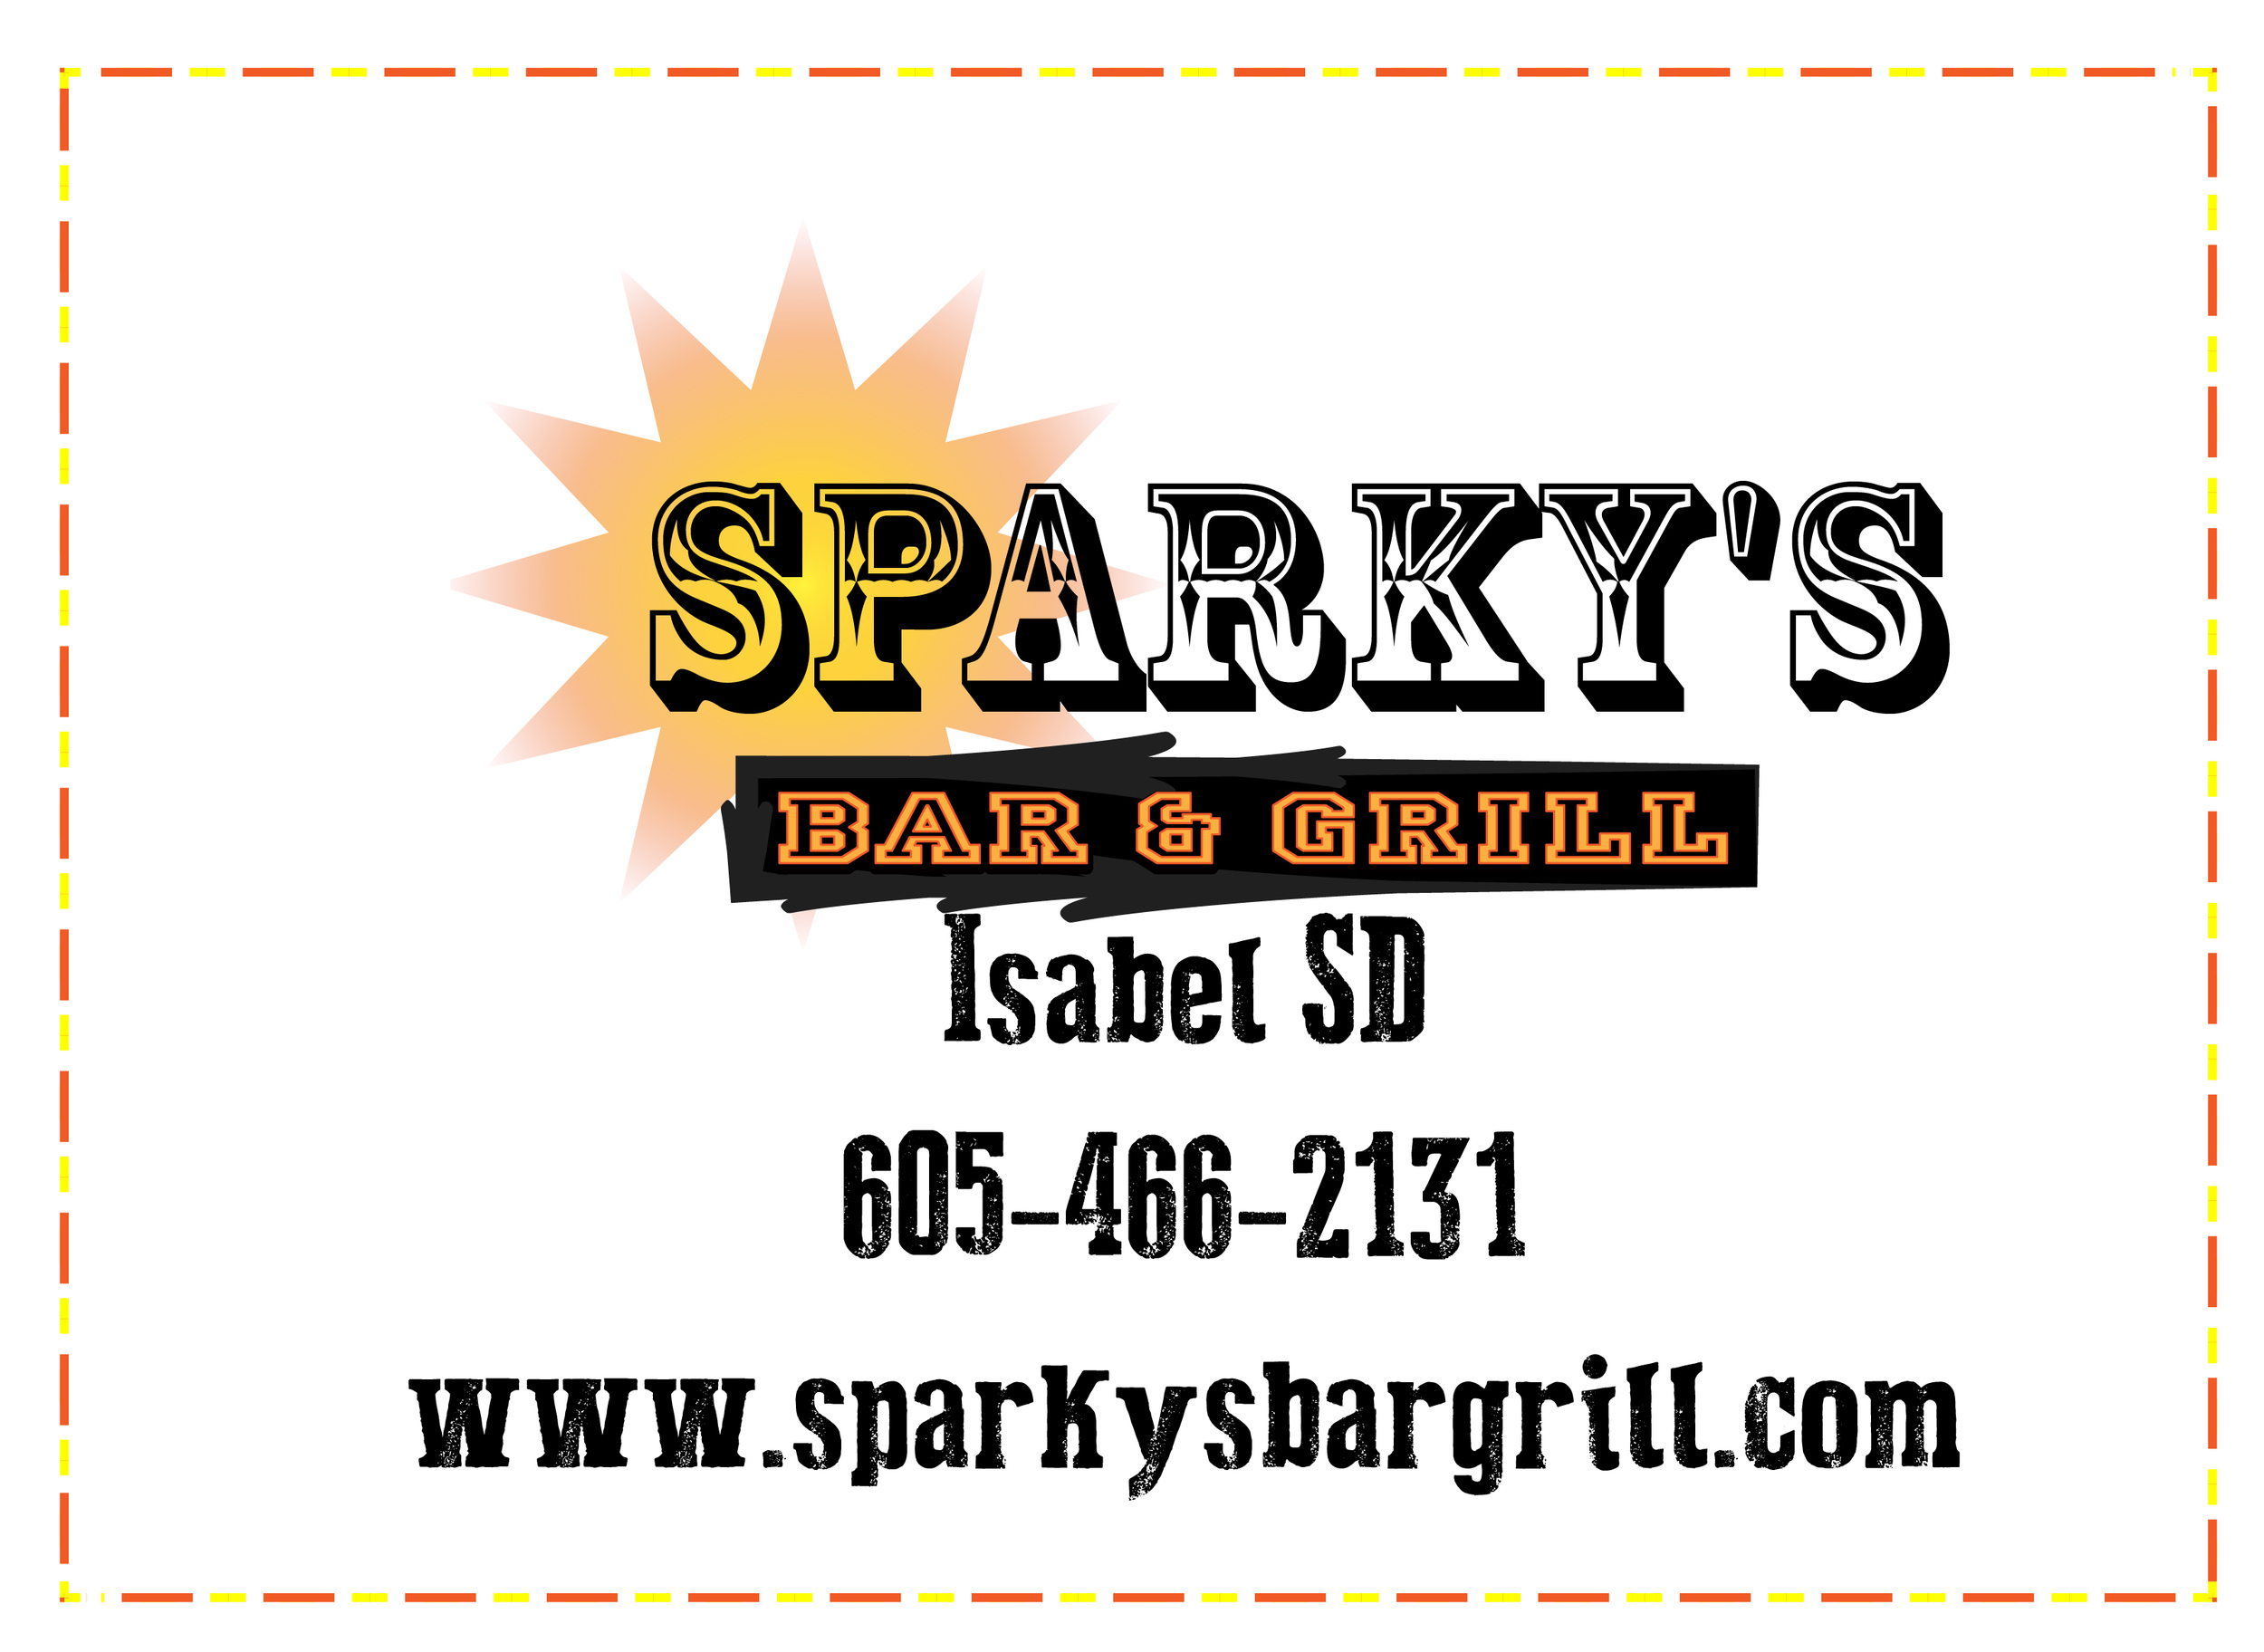 Sparkys Website